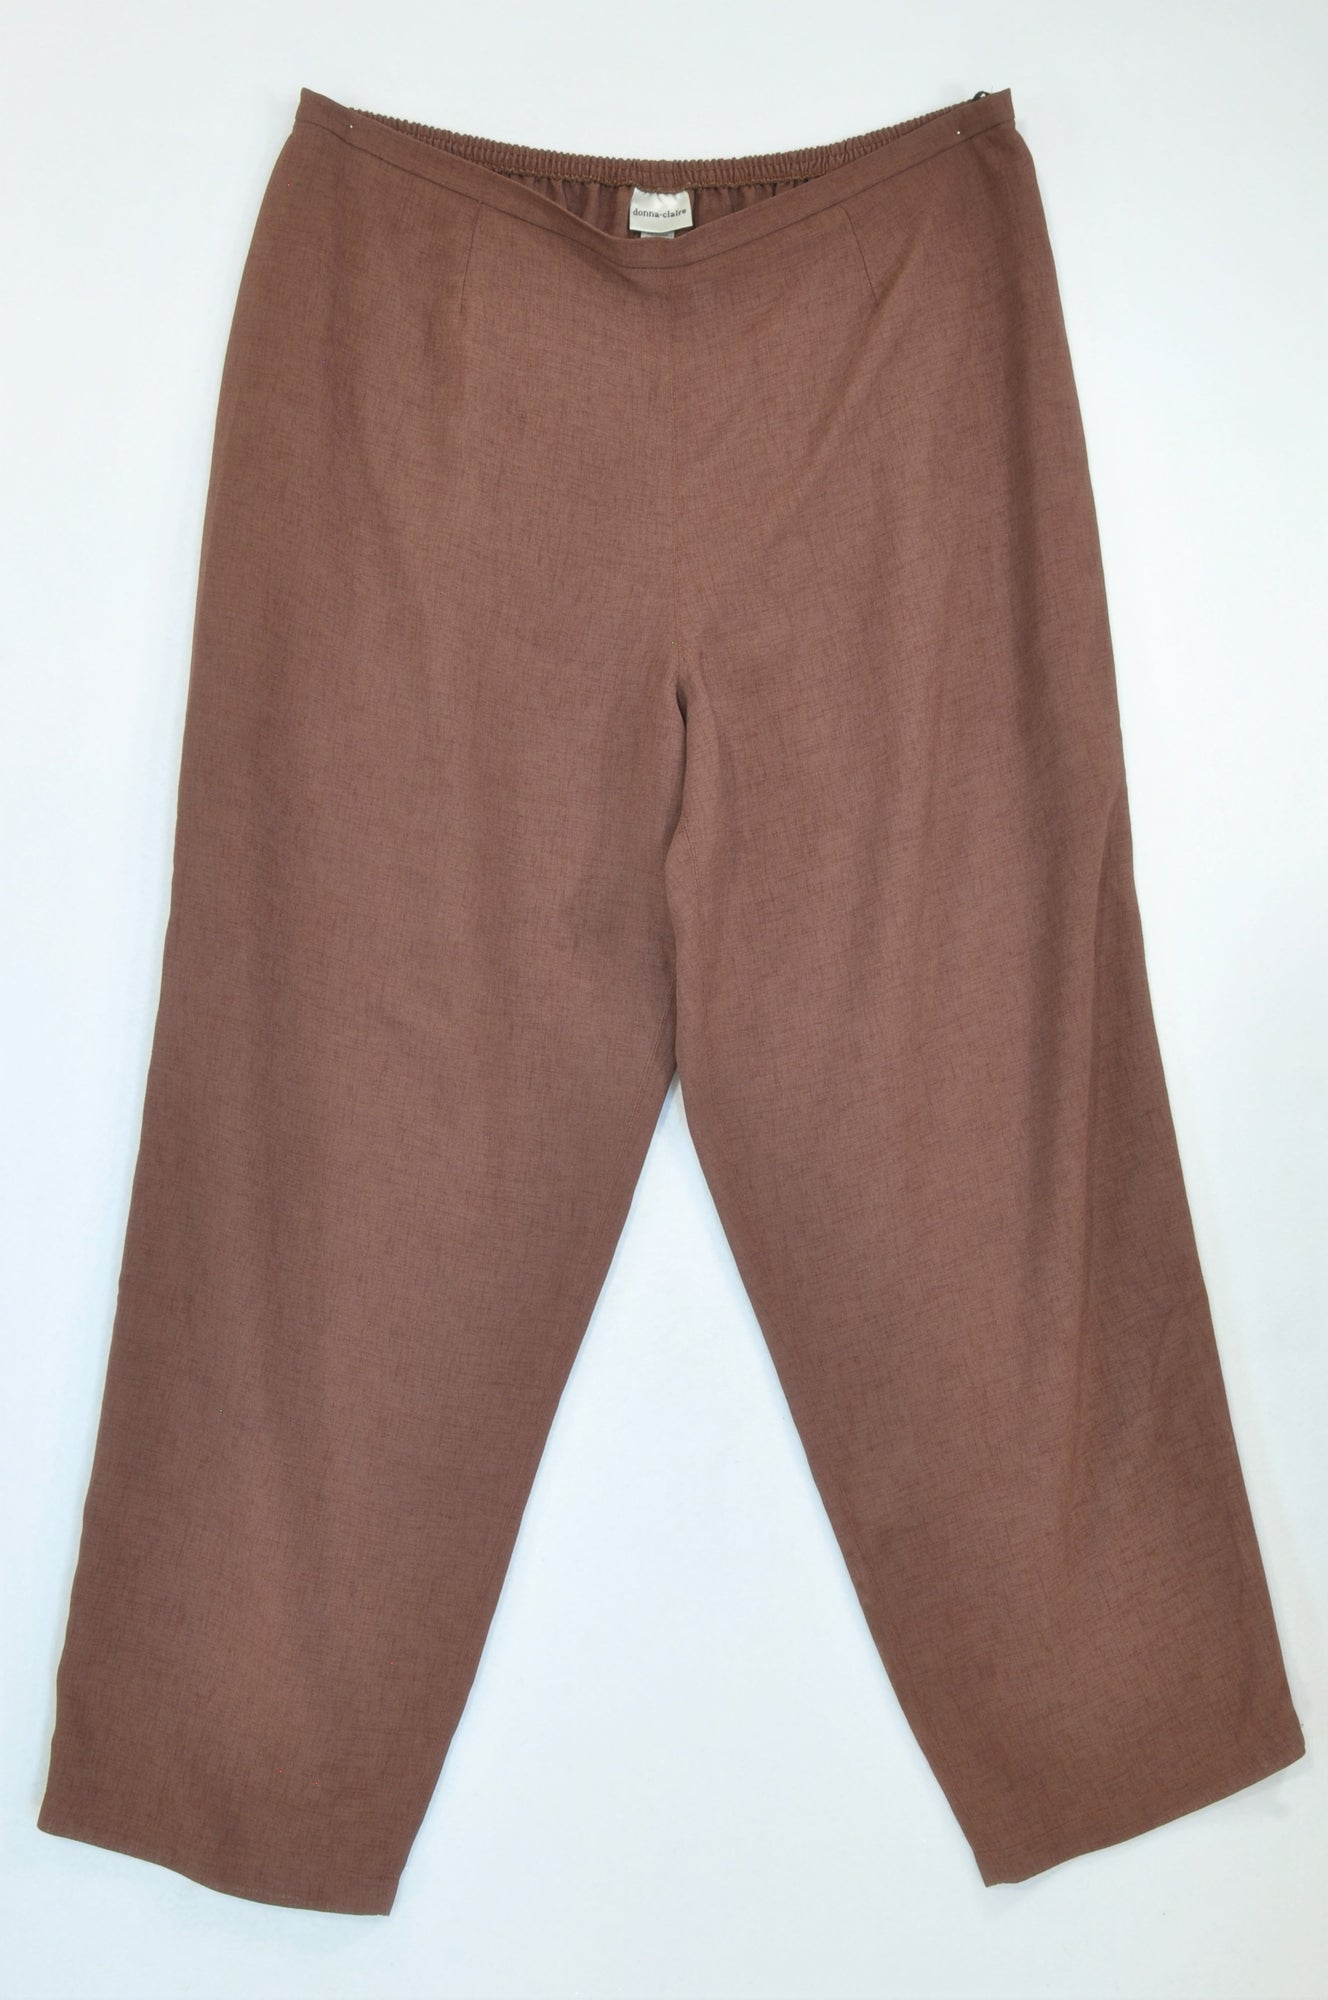 Donna Claire Heathered Brown Slack Pants Women Size 20